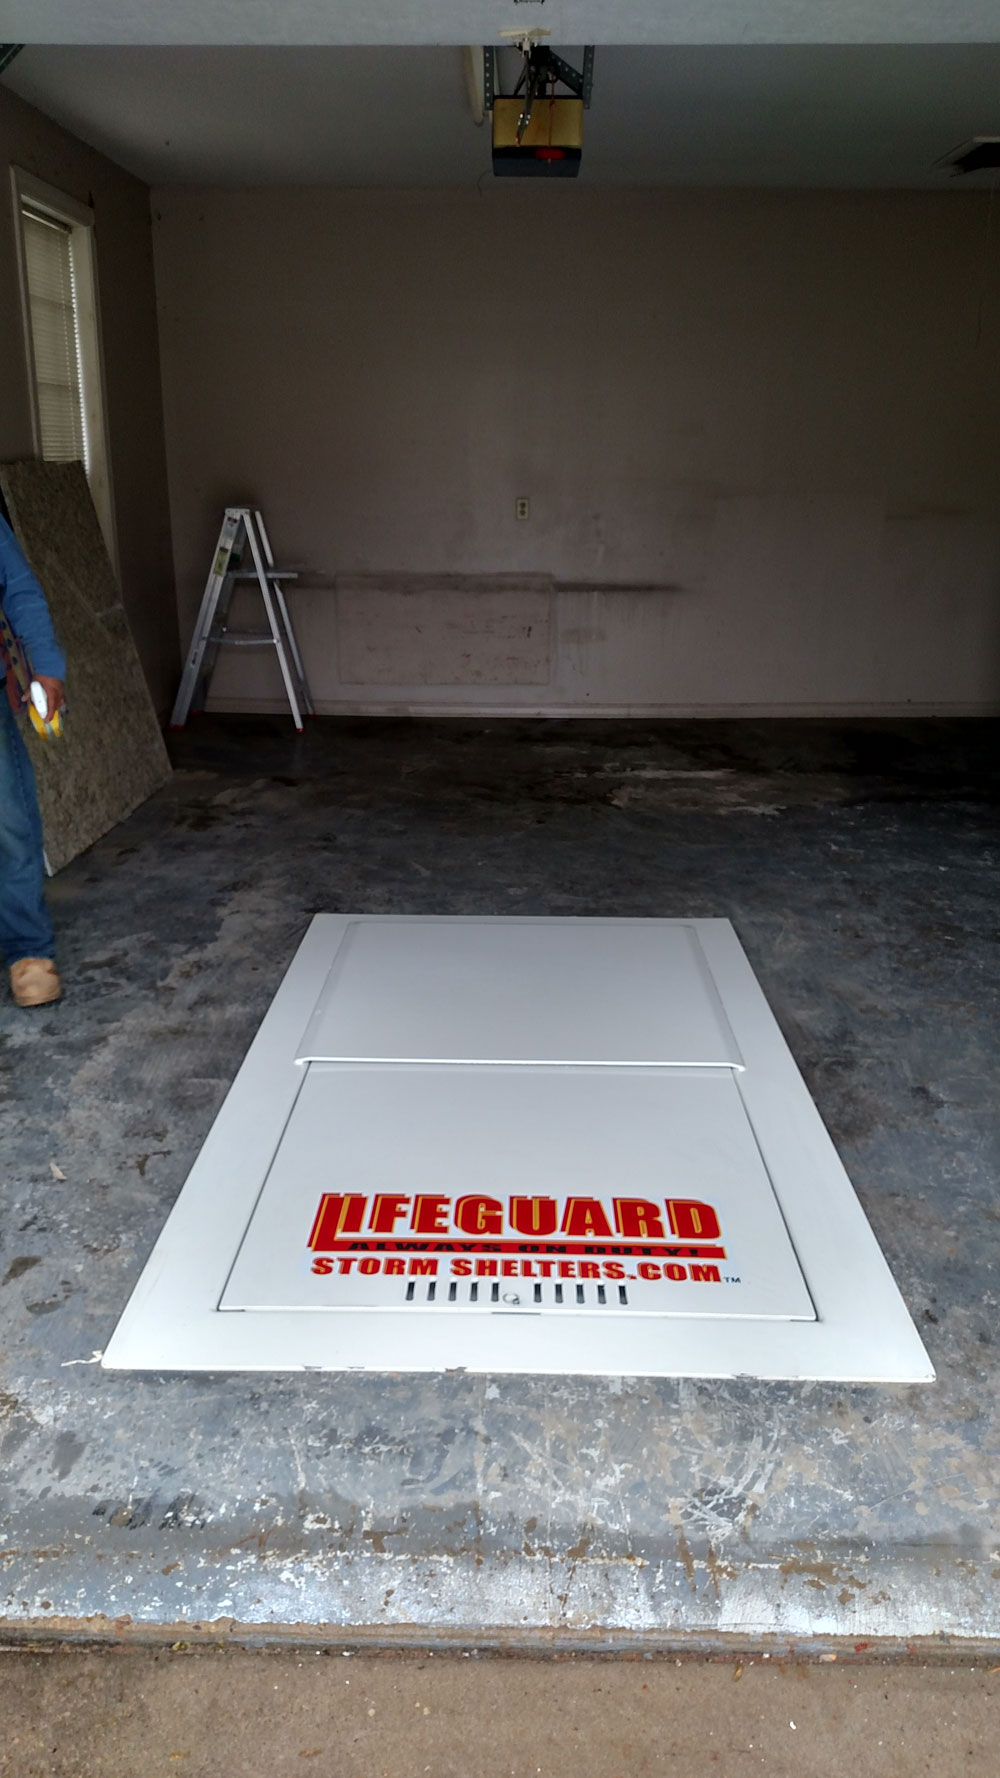 Garage Floor Shelters preexisting homes Photo Gallery